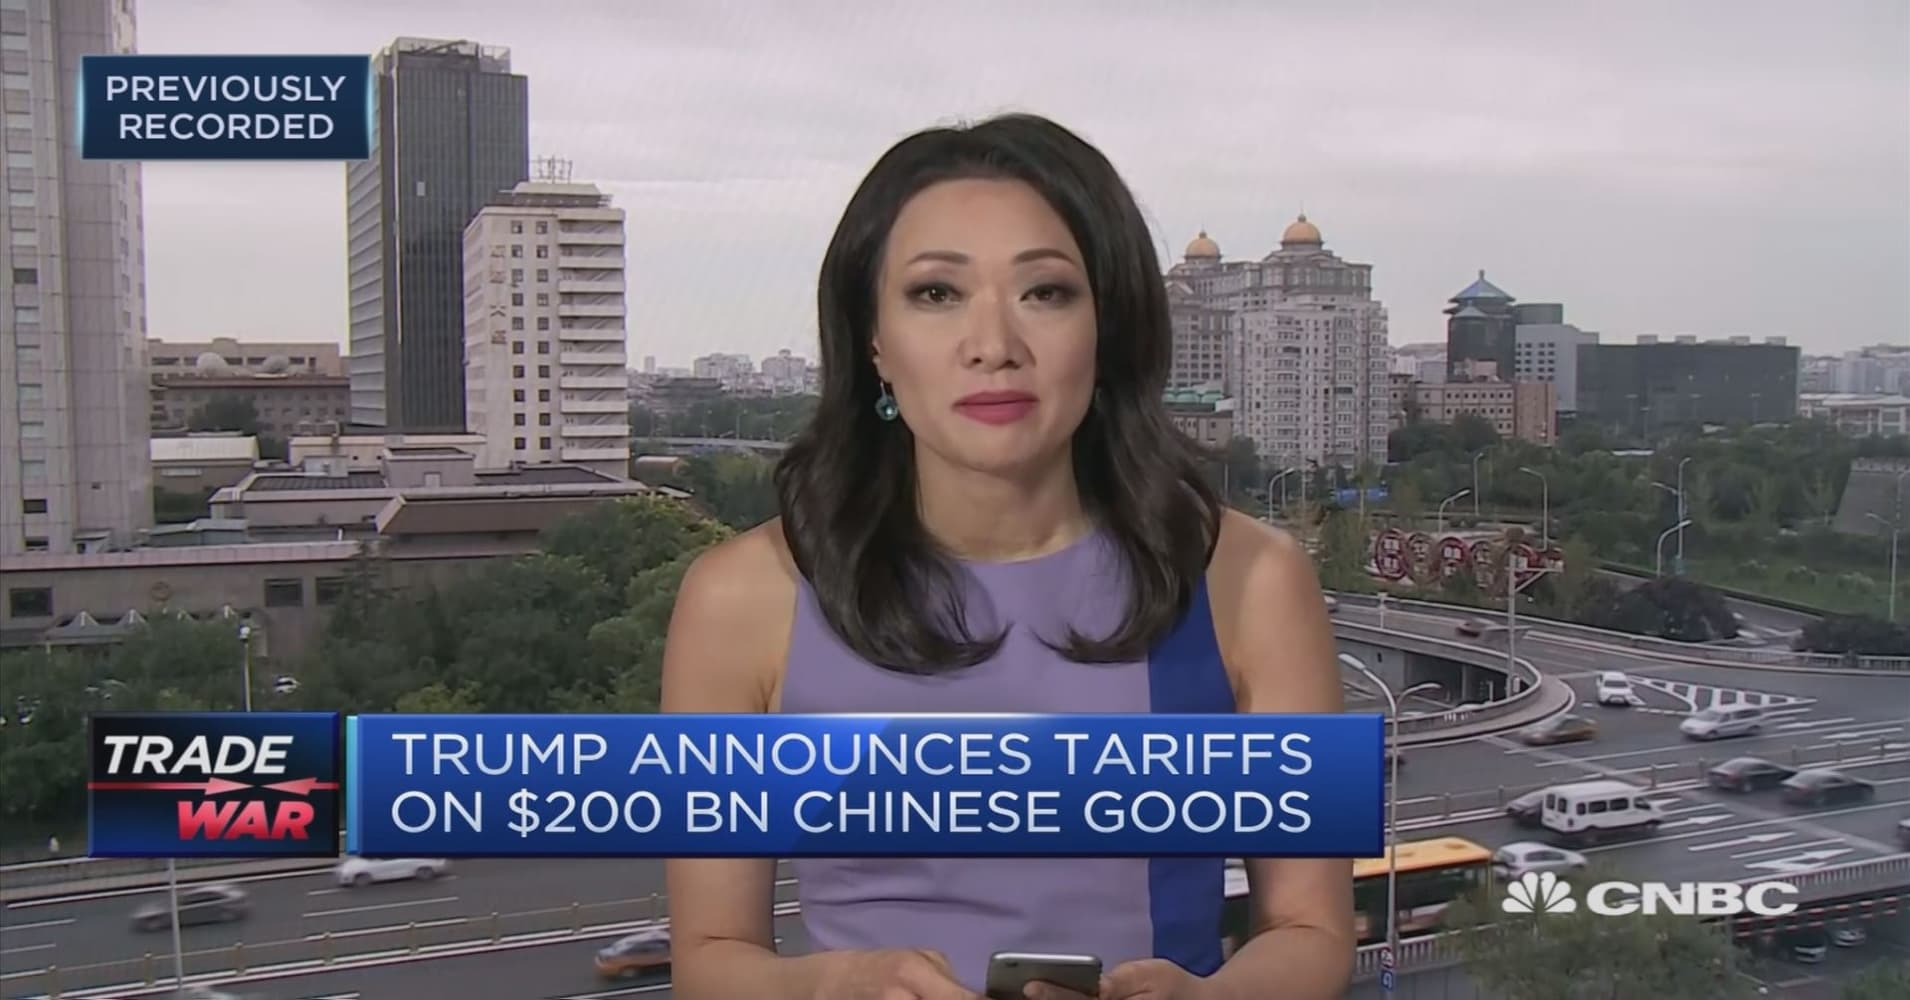 Trump will slap 10% tariffs on $200 billion in Chinese goods — and they will go to 25% at year-end